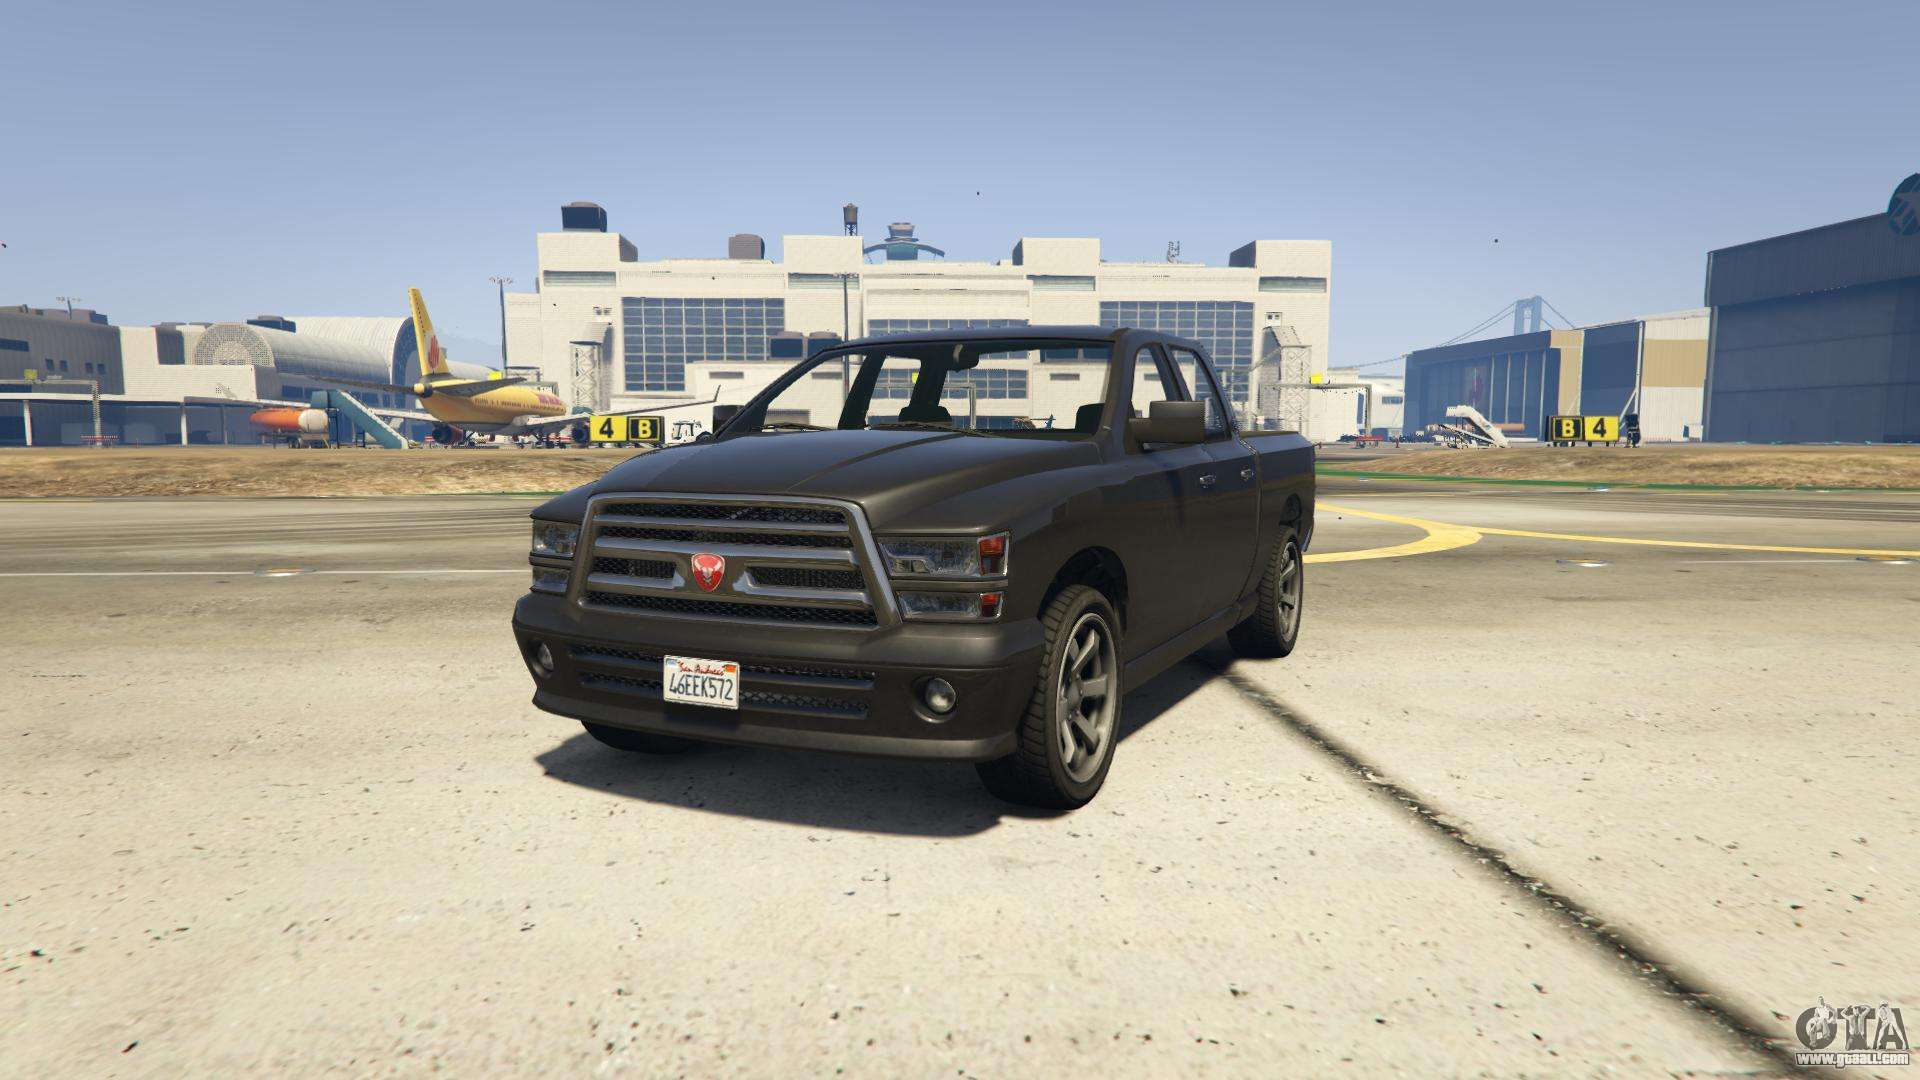 Bravado Bison Gta 5 GTA 5 vehicles: all ca...